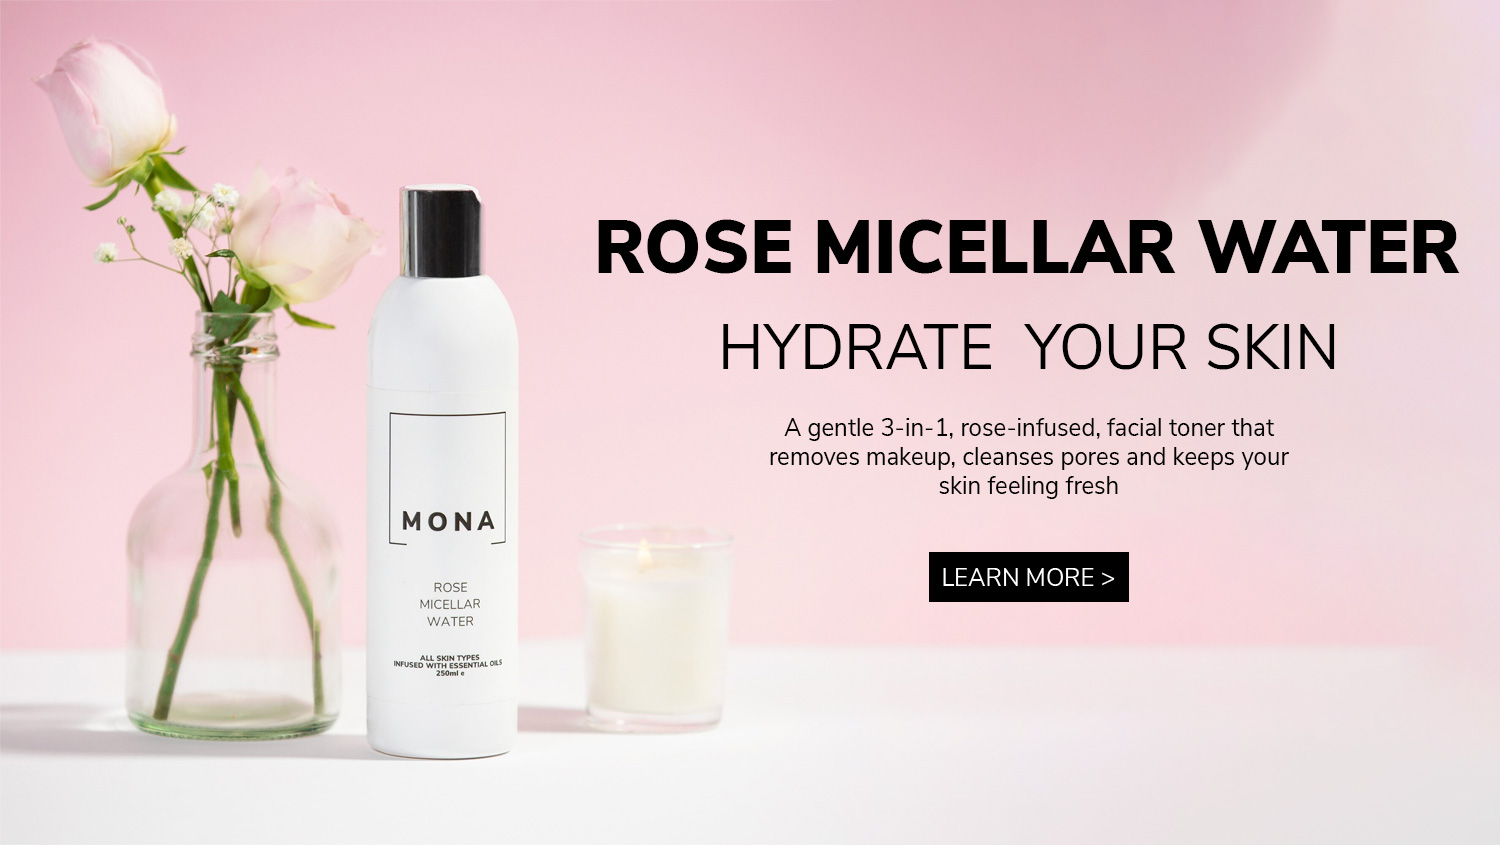 ROSE MICELLAR WATER